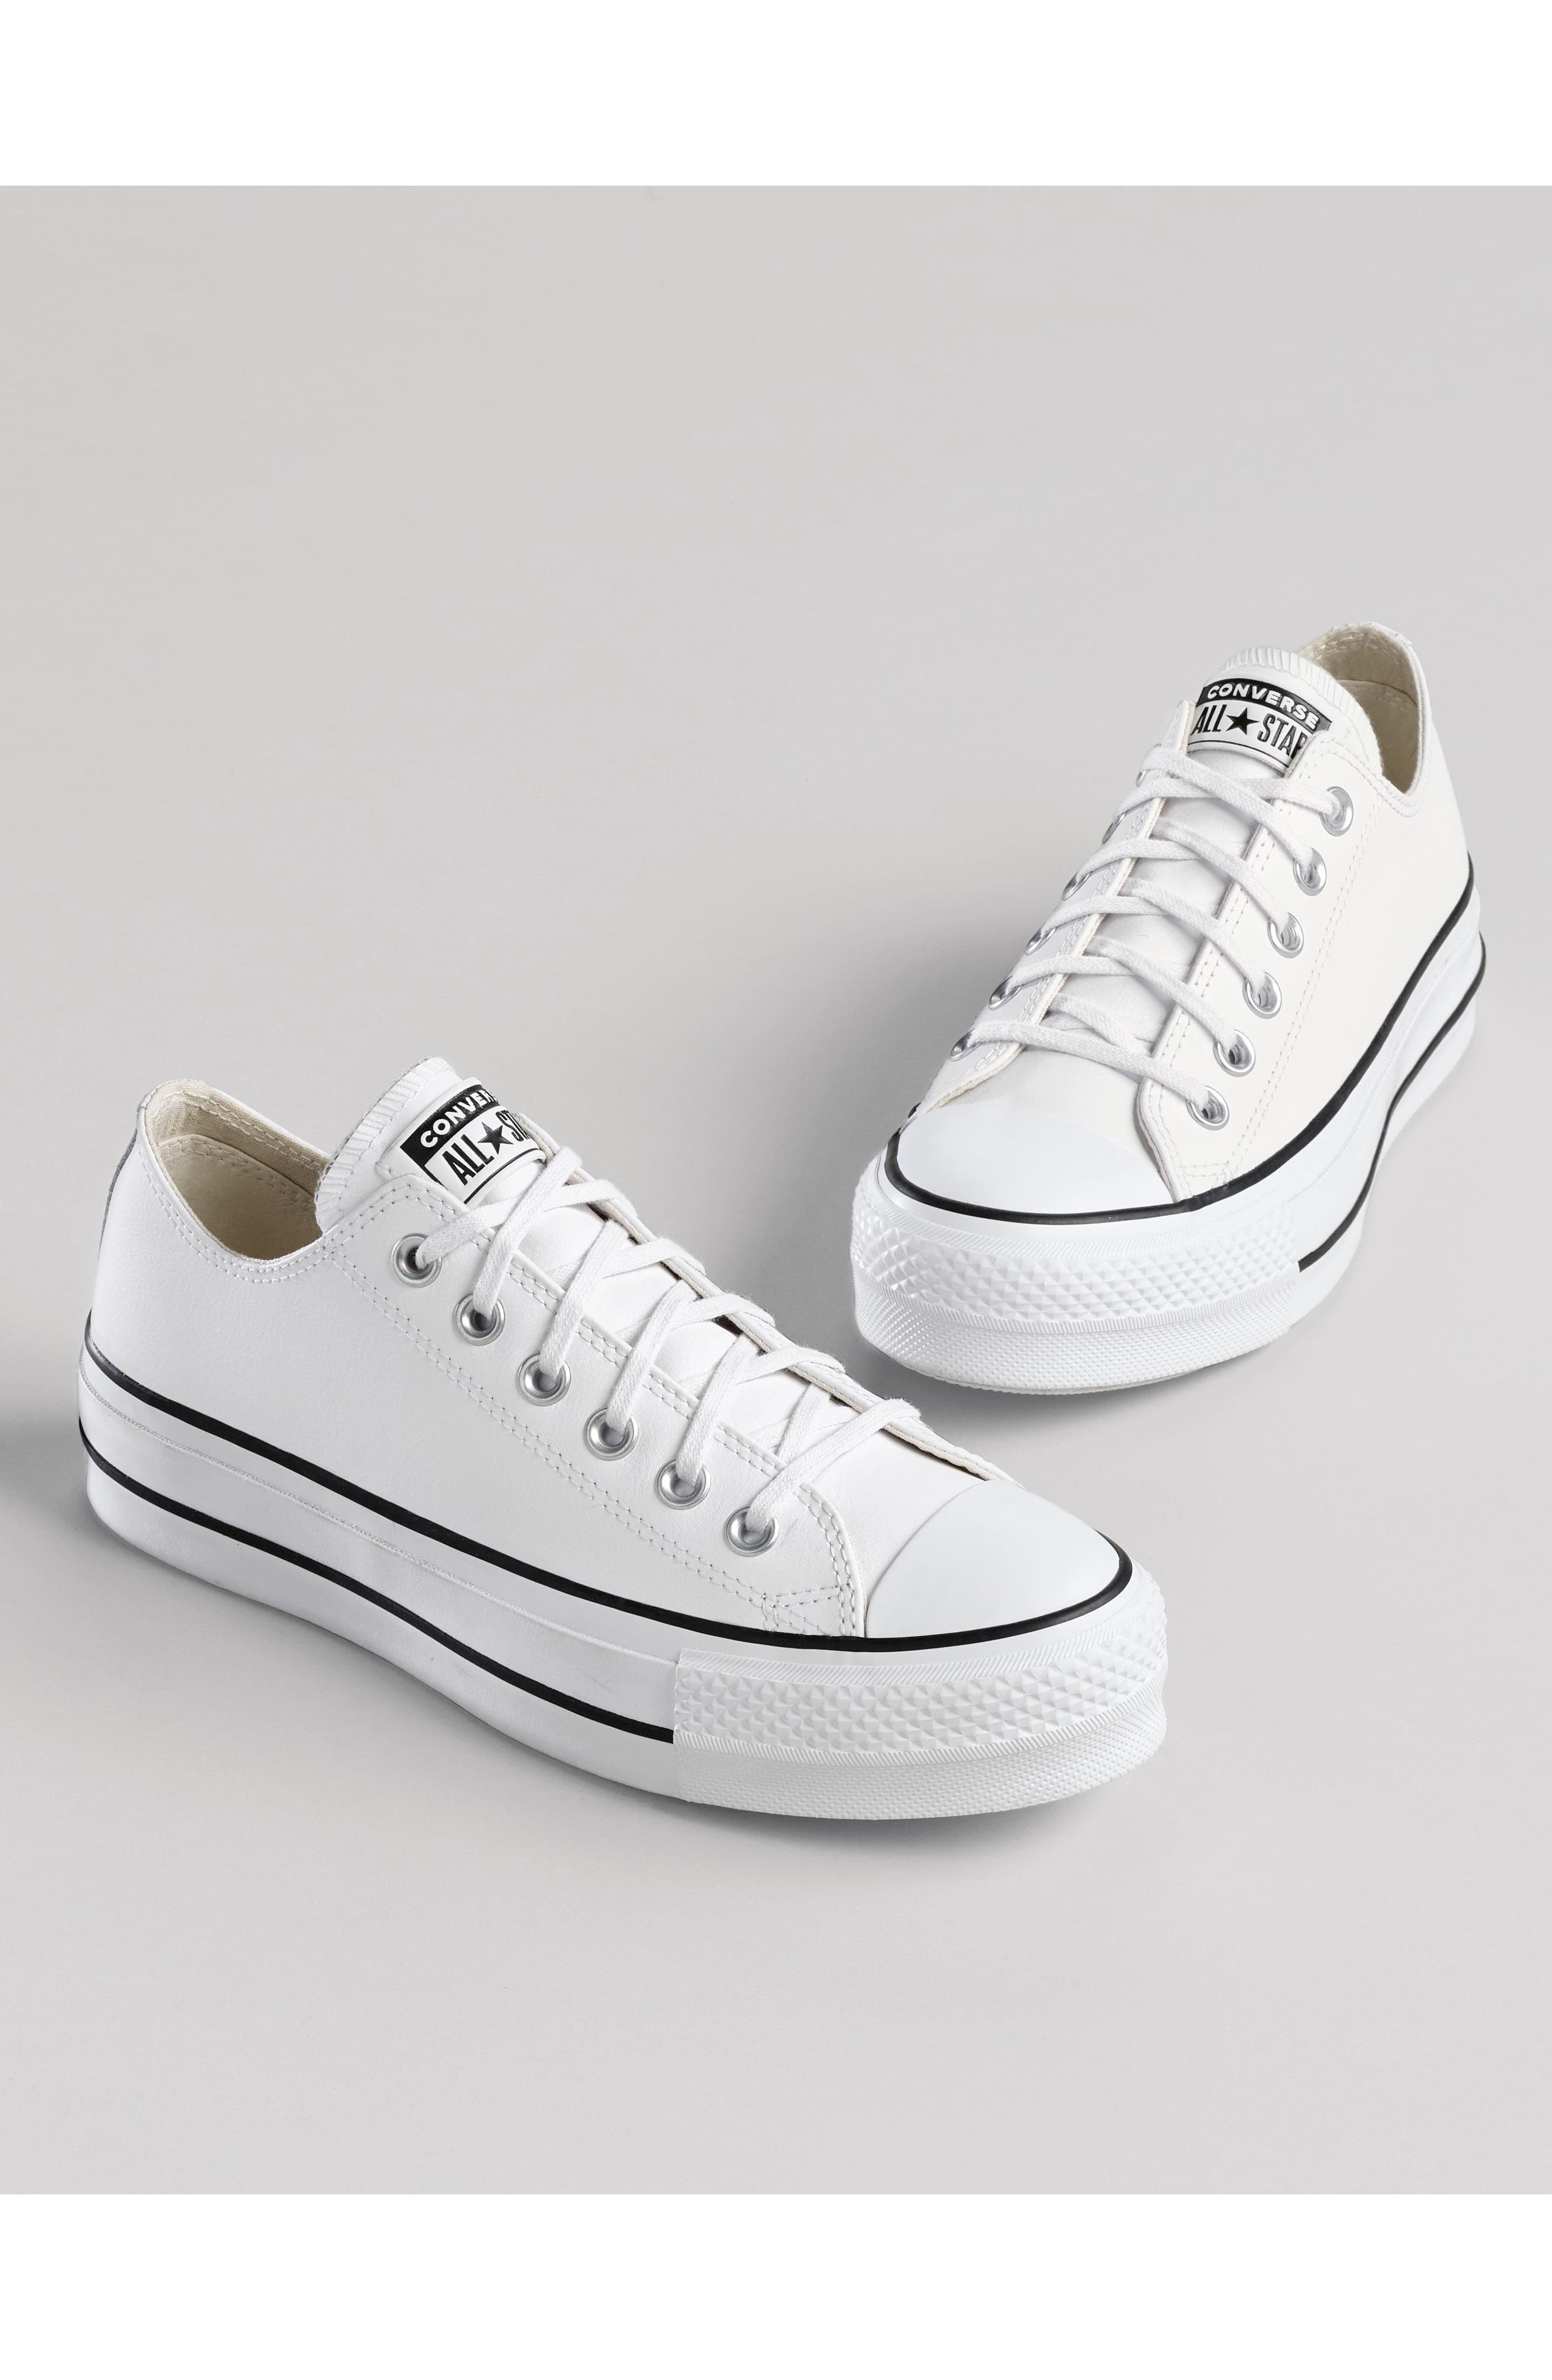 Chuck Taylor<sup>®</sup> All Star<sup>®</sup> Platform Sneaker,                             Alternate thumbnail 7, color,                             DARK SANGRIA NUBUCK